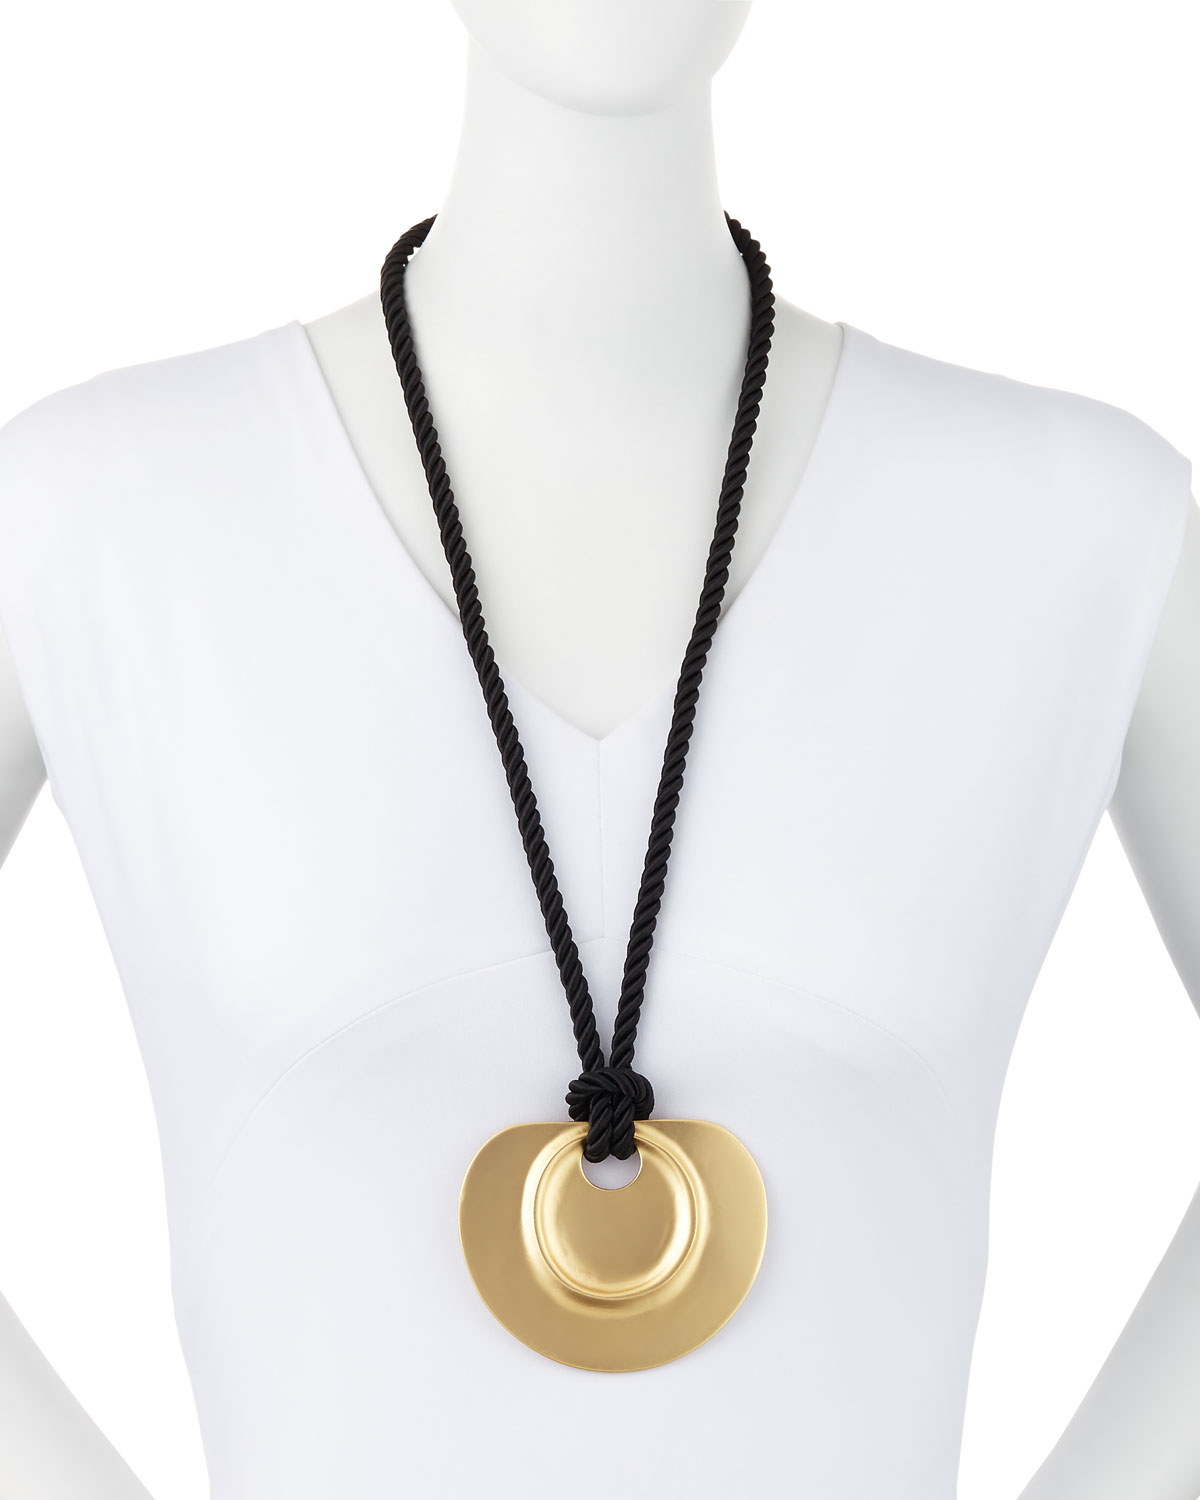 Lyst kenneth jay lane long golden pendant necklace w black cord gallery mozeypictures Choice Image